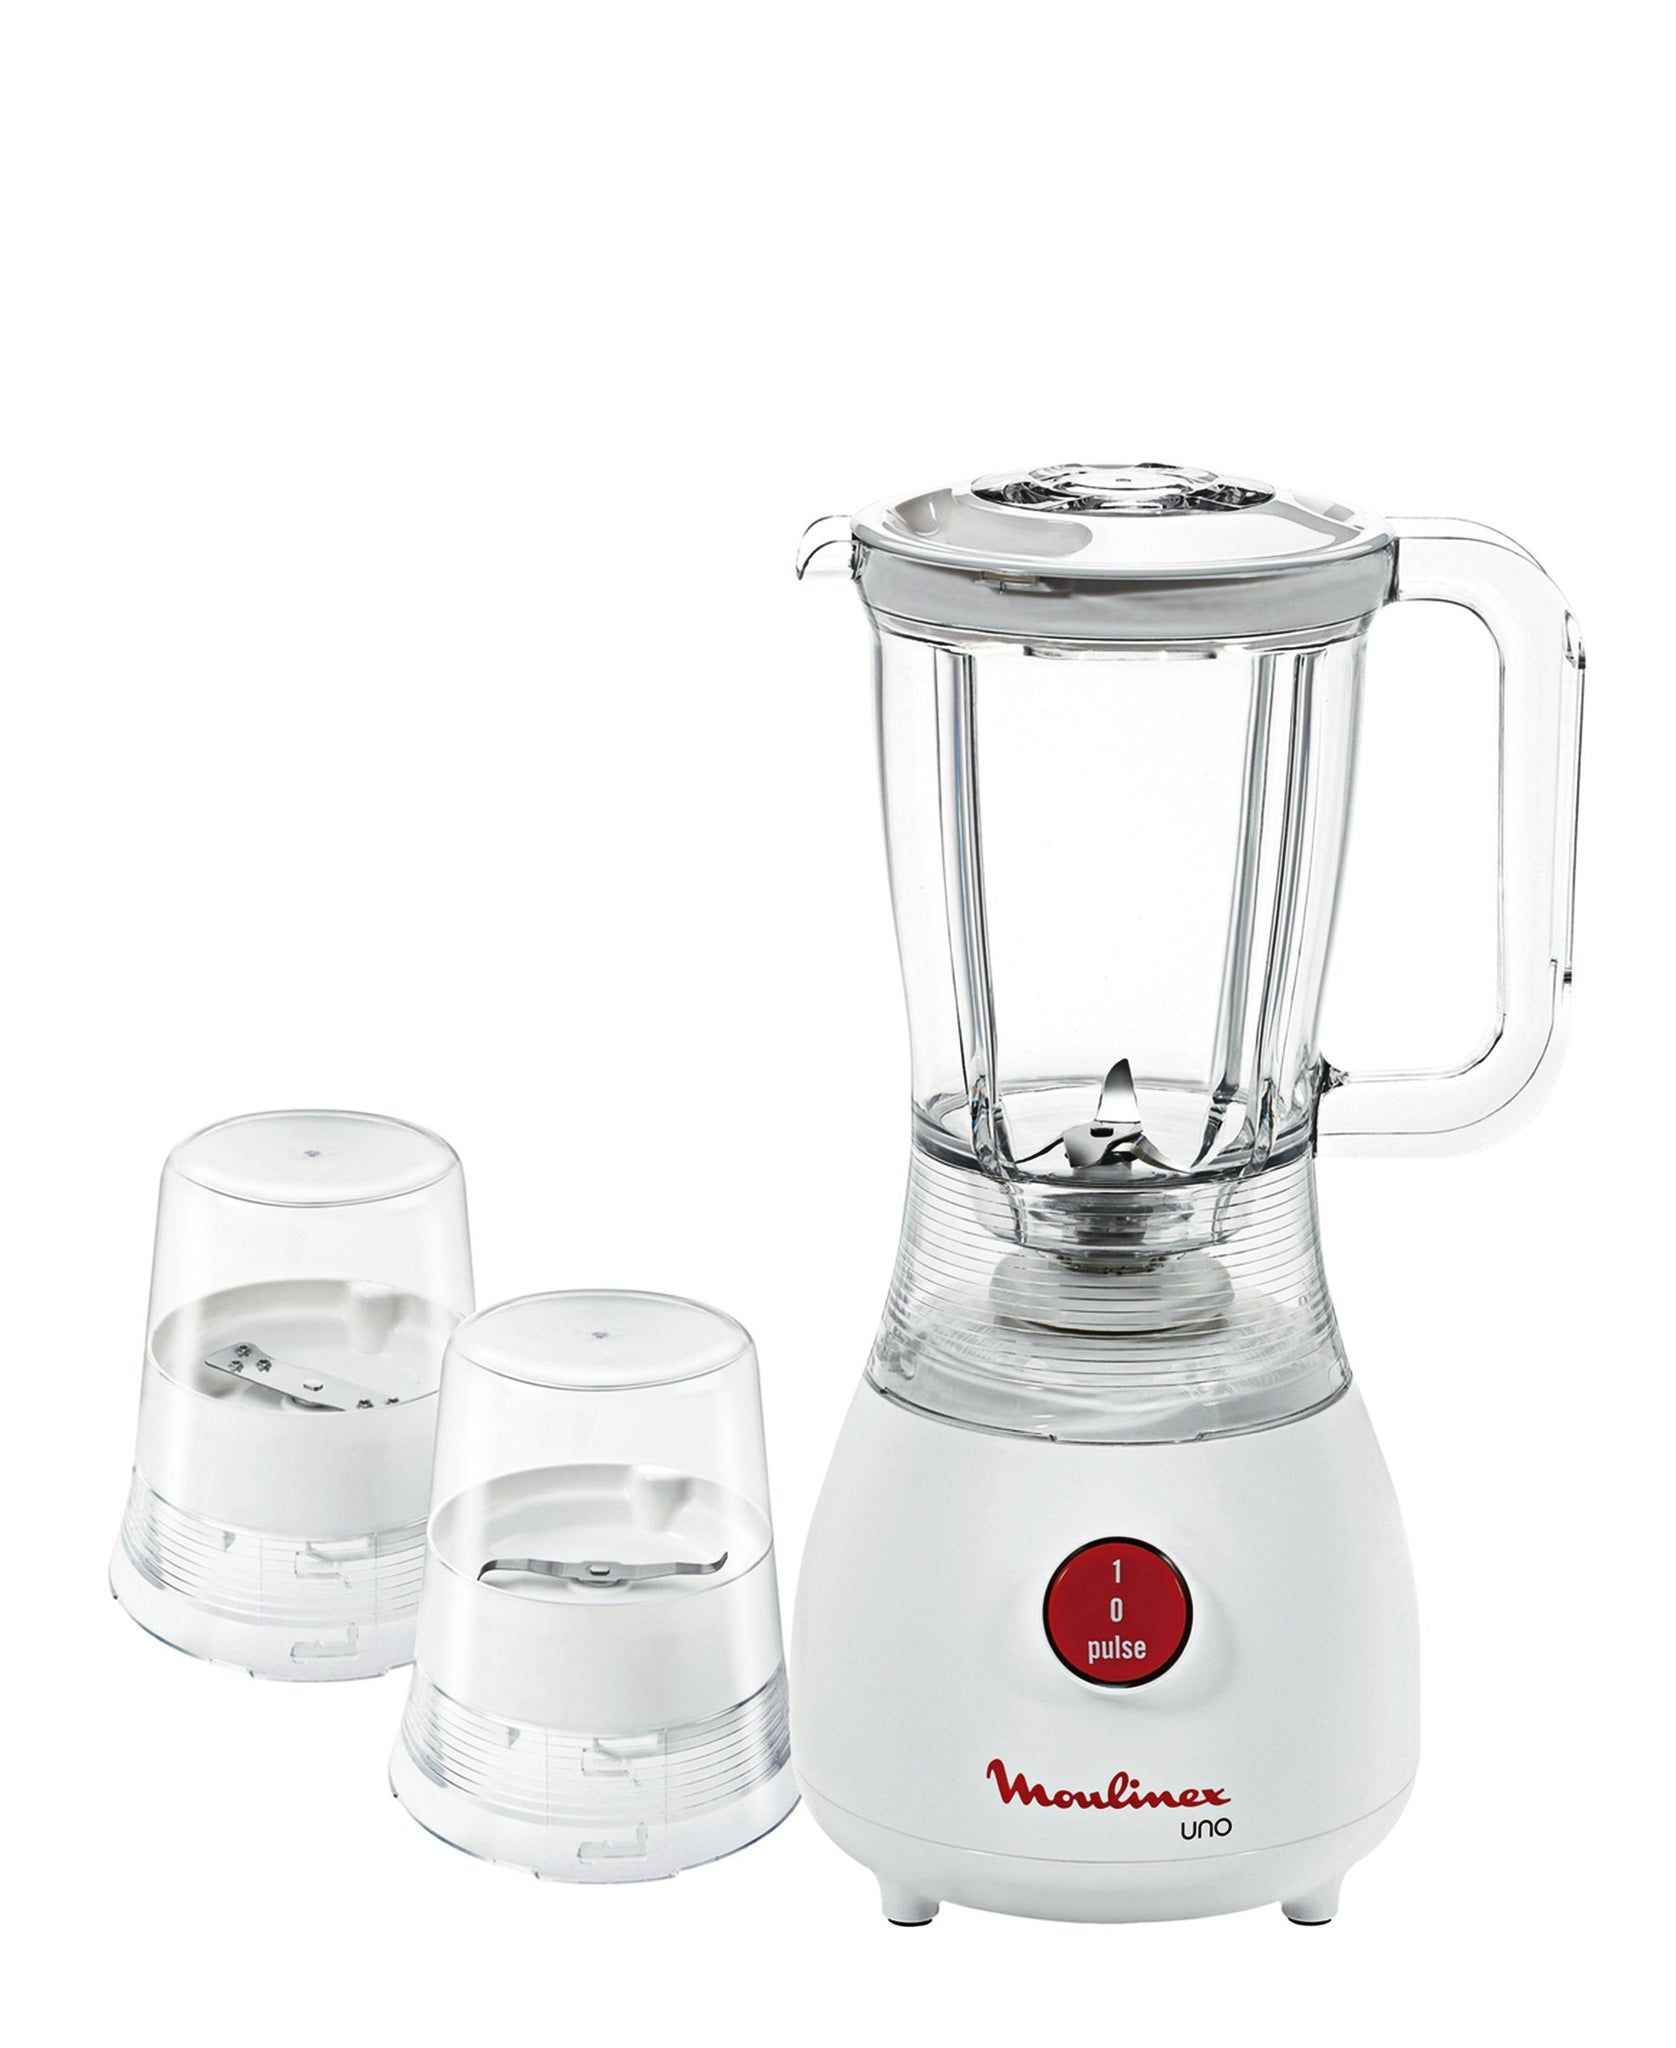 Moulinex Uno Blender - White